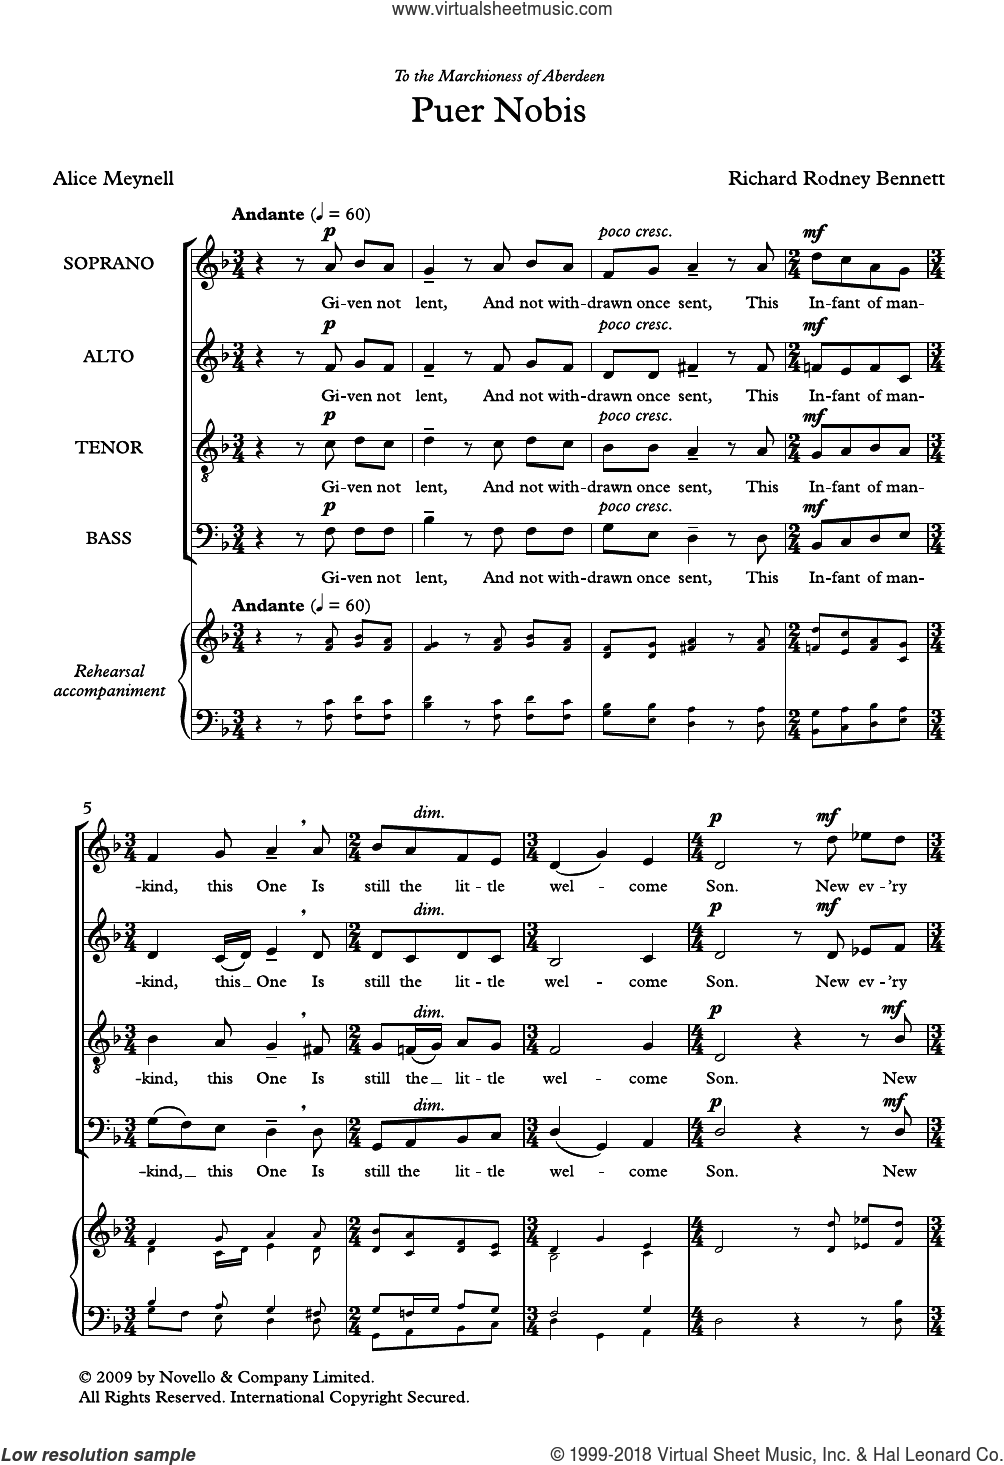 Puer Nobis sheet music for choir and piano by Alice Maynell